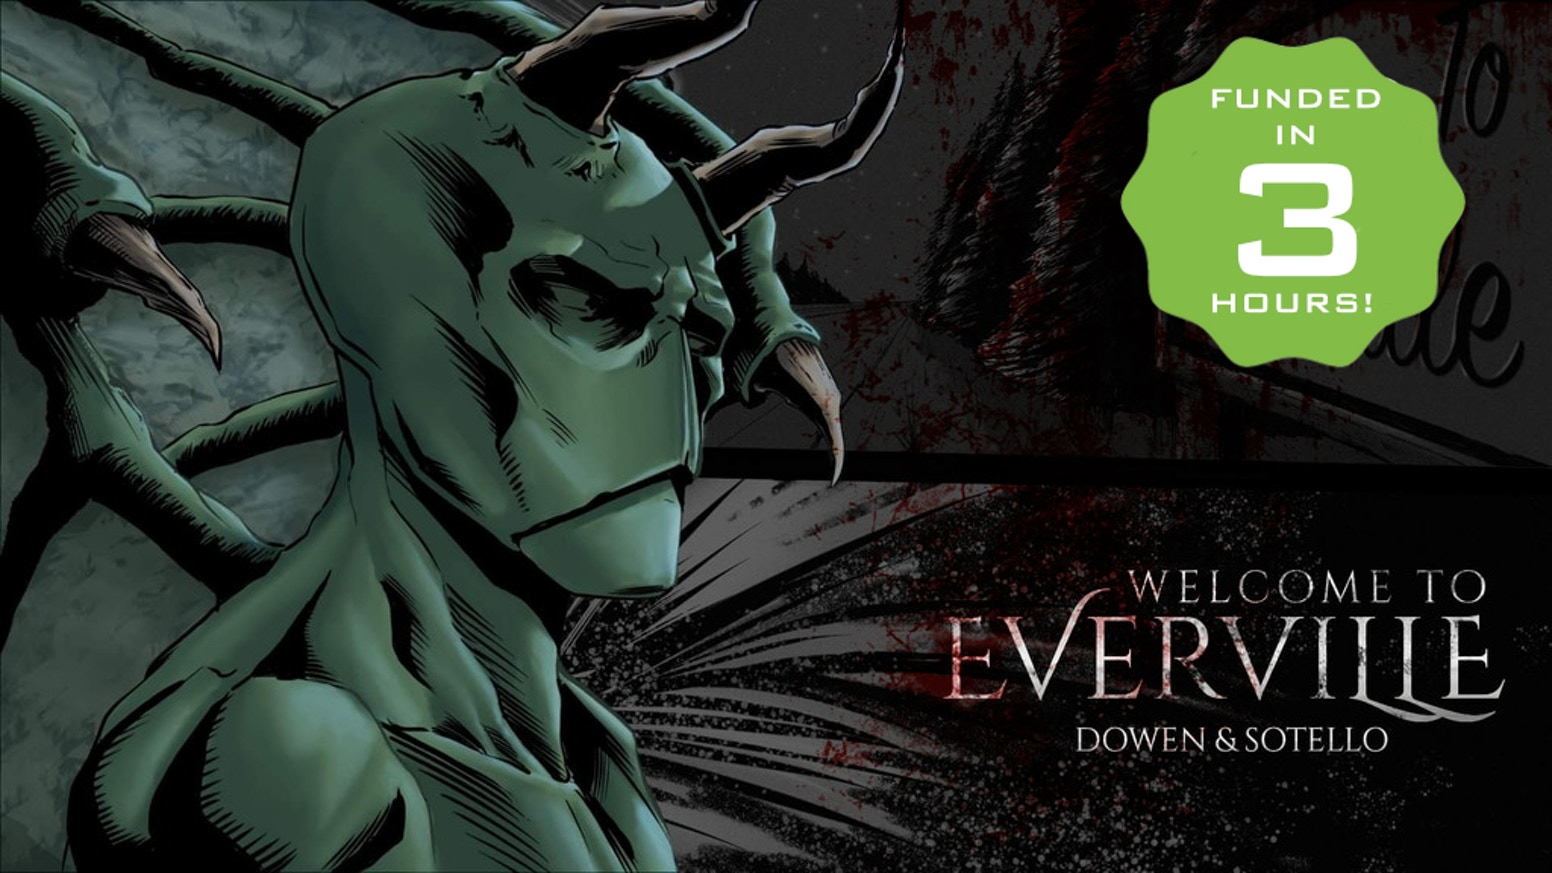 A horror/dark fantasy comic book series about a family on the brink of worldwide catastrophe.